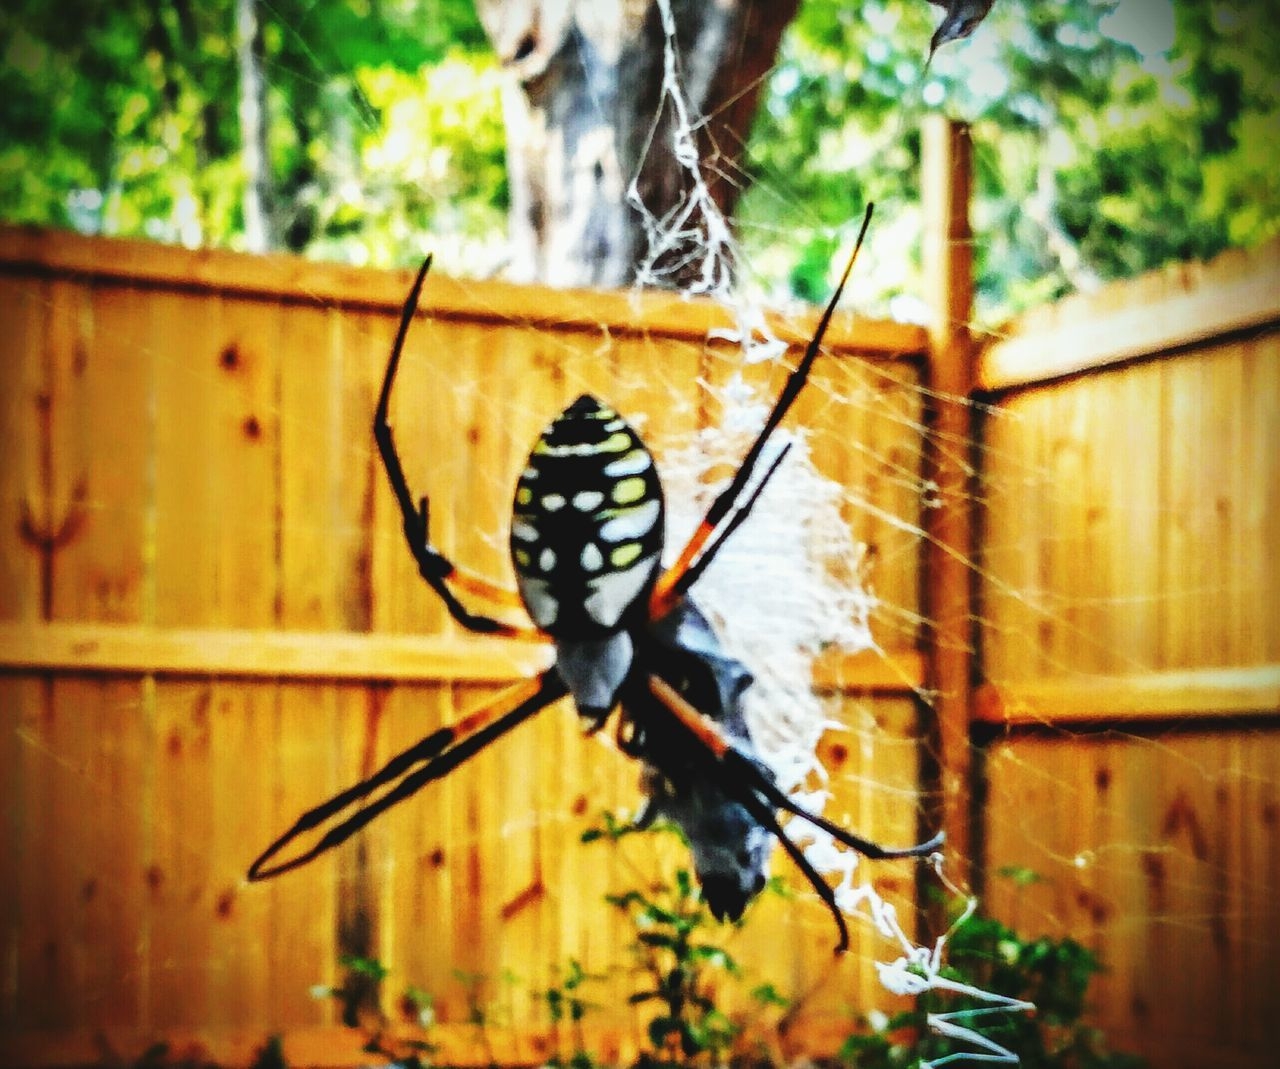 This banana spider just wrapped up dinner. What's For Dinner? Spider Check This Out Eye4photography  Out My Front Door Cellphone Photography I Love Taking Pictures <3 Eyeem Mother Nature Beautiful Surroundings Eyeem Popular Photos